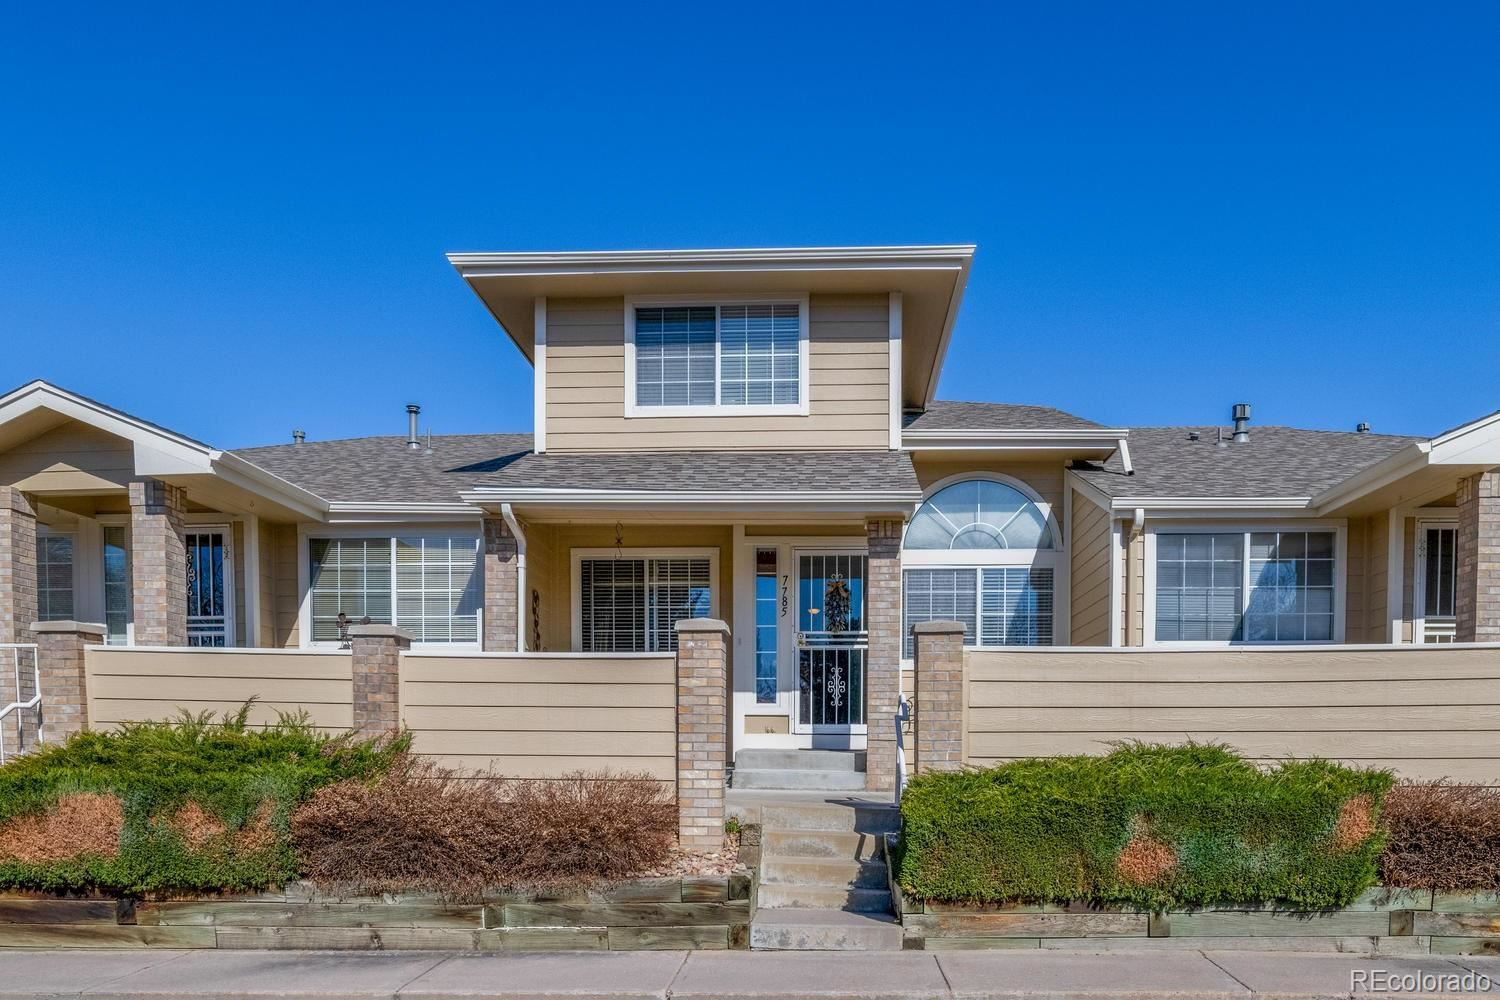 7785 W 90th Drive, Westminster, CO 80021 - #: 9837873